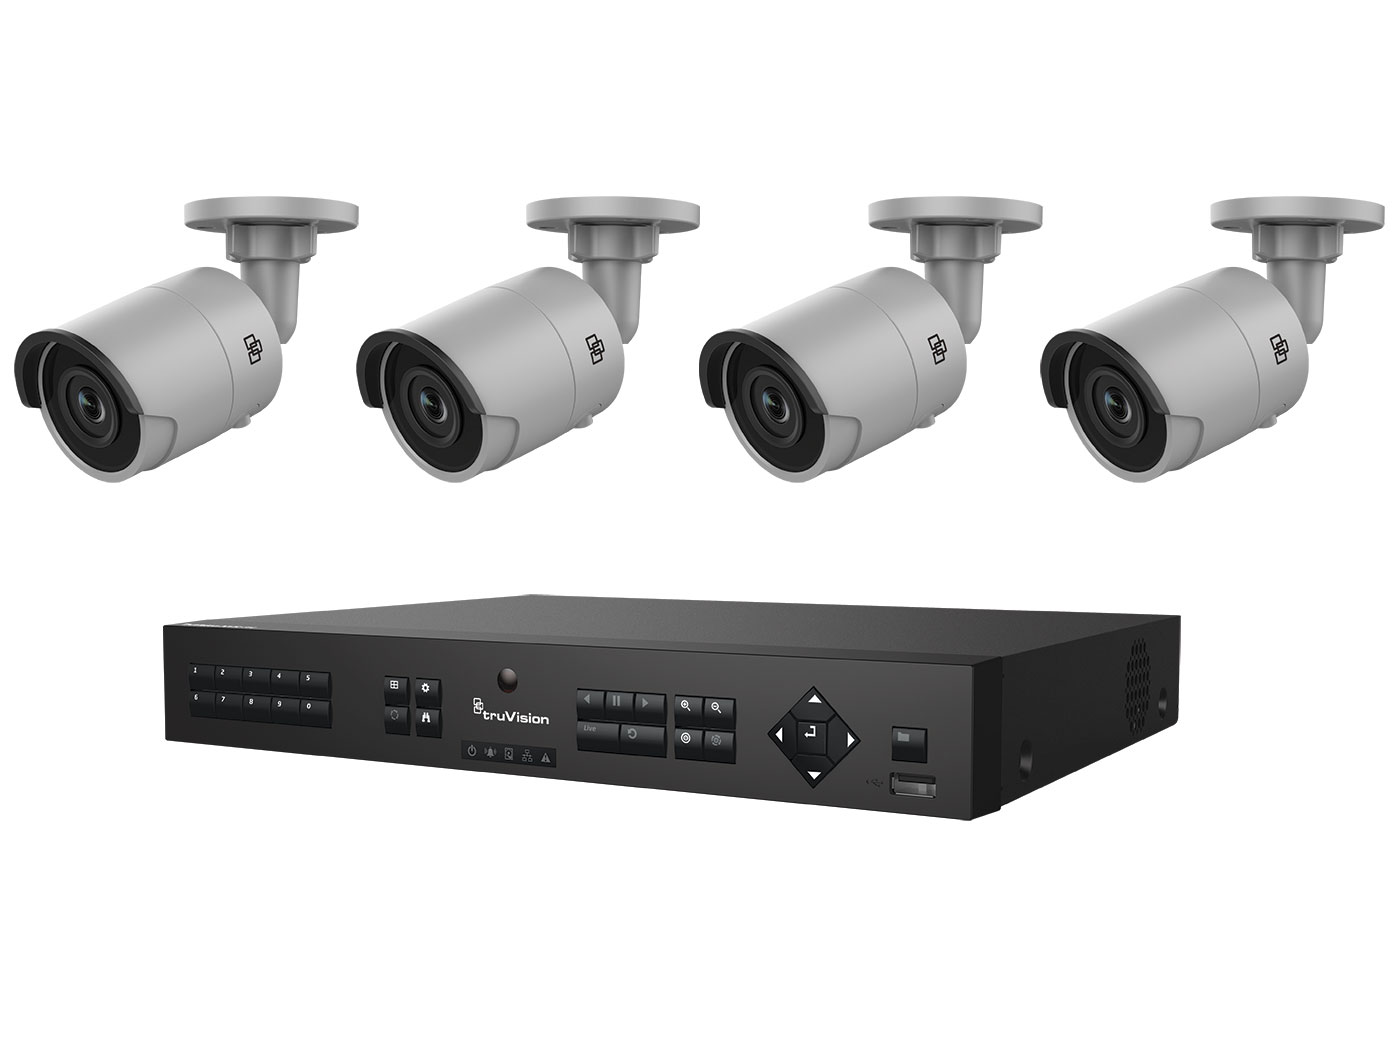 TVN-1104-KB1 INTERLOGIX HD H.265 PLUG-AND-PLAY POE SURVEILLANCE BUNDLE CONTAINS 1- 4-CHANNEL REAL-TIME 4-POE PORT HD NVR WITH 1TB AND 4 INDOOR-OUTDOOR HD 3 MPXL IR BULLET CAMERAS. CONTENTS: 1 x TVN-1104cS-1T 4 x TVB-5501 4mm 3Mpx bullet H.265 ************************* SPECIAL ORDER ITEM NO RETURNS OR SUBJECT TO RESTOCK FEE *************************